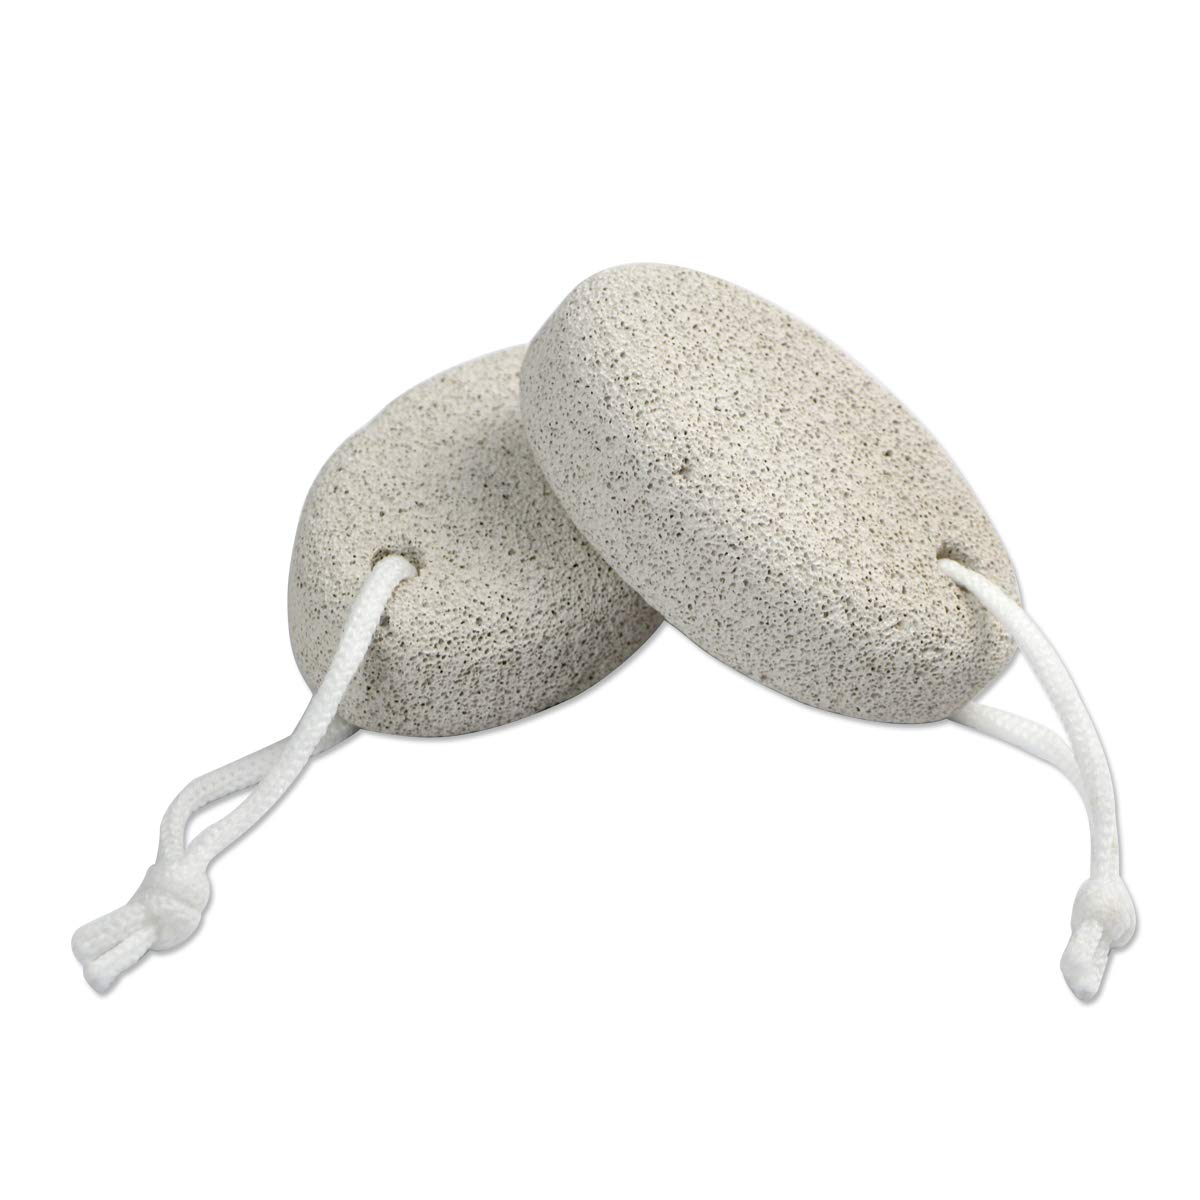 DEELING STYLE 2 Pack Foot Pumice Stone for Feet Hard Skin Callus Remover and Scrubber: Beauty